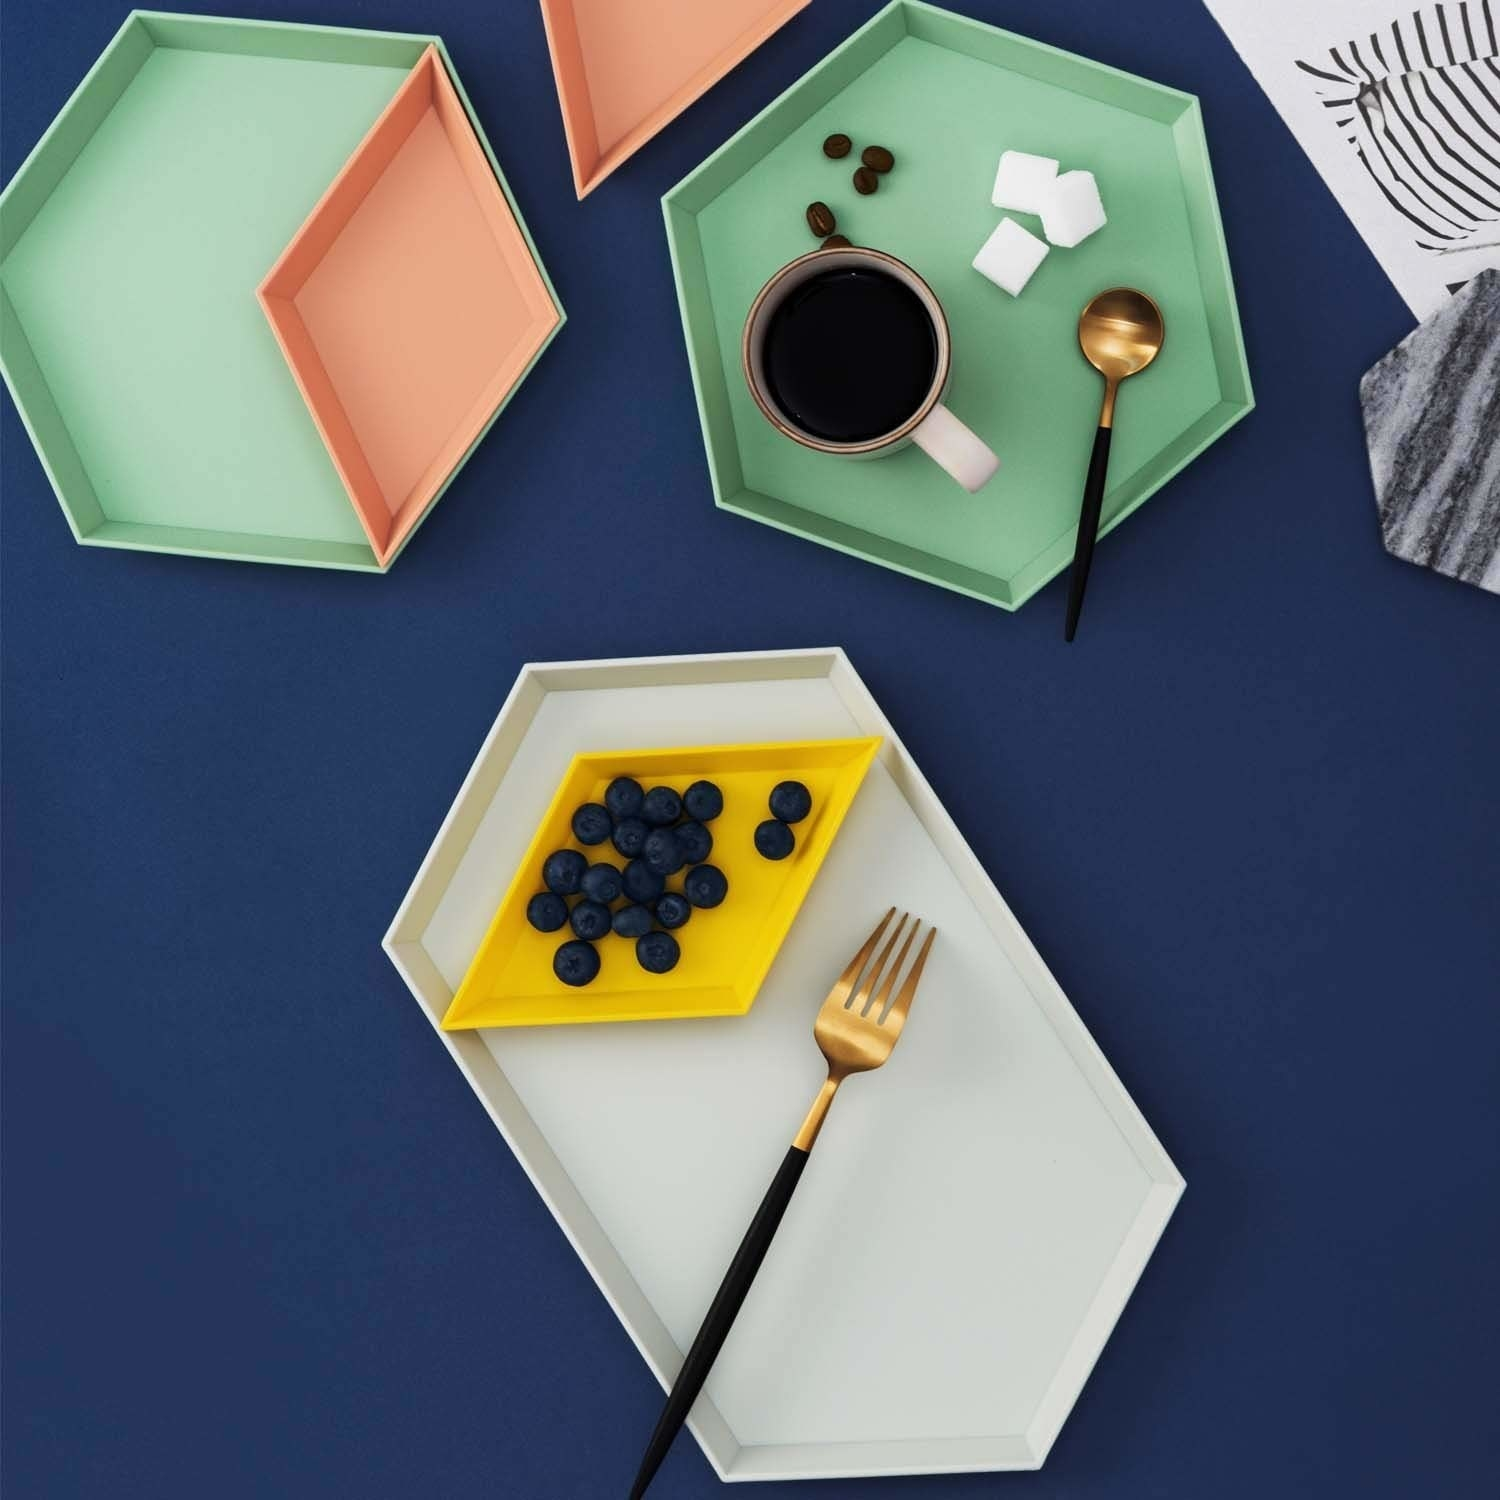 The geometric trays being used as a table setting.